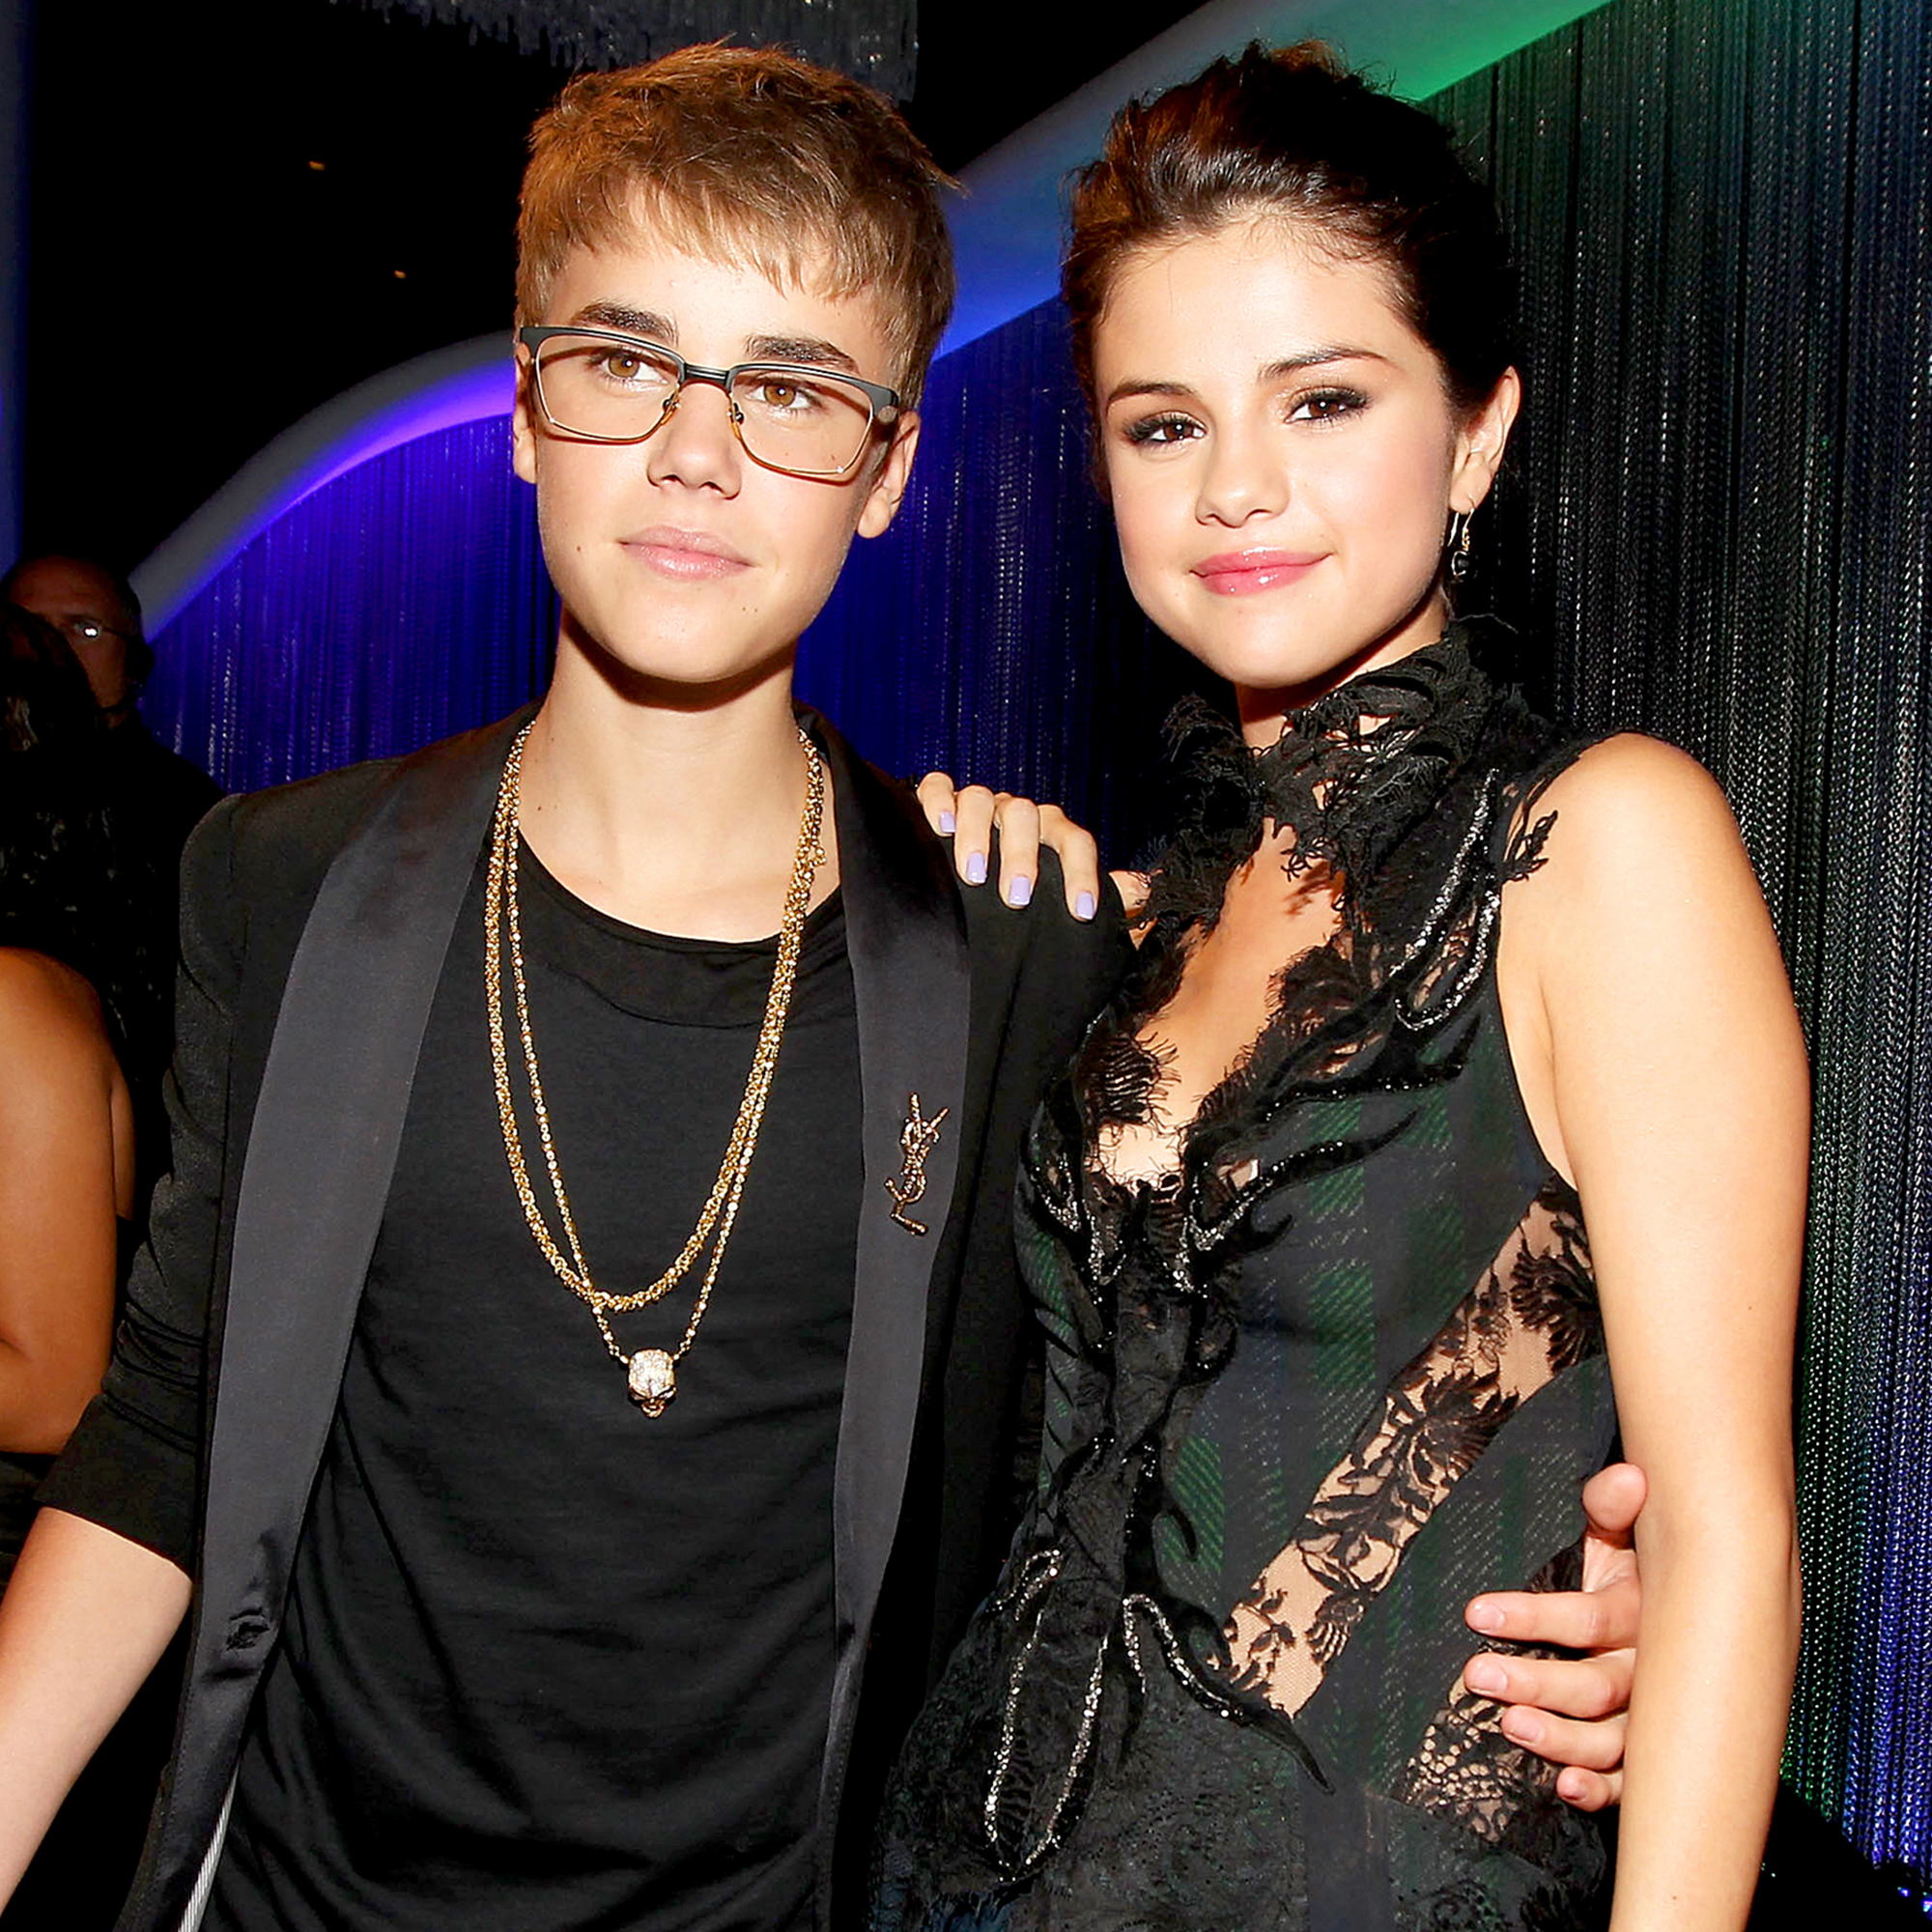 Selena Gomez's mum 'not happy' she's back with Justin